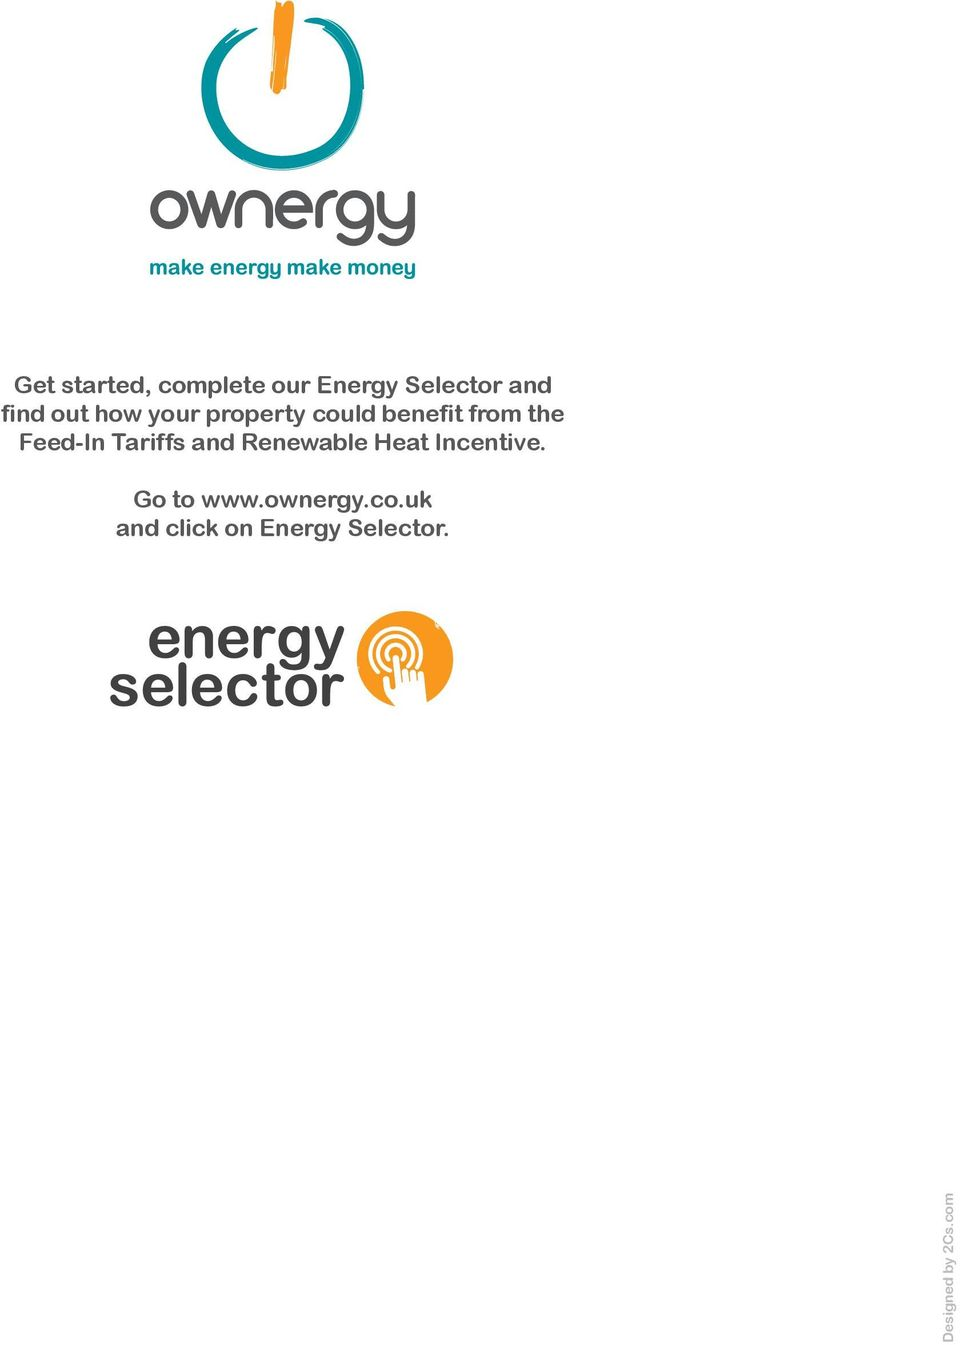 Tariffs and Renewable Heat Incentive. Go to www.